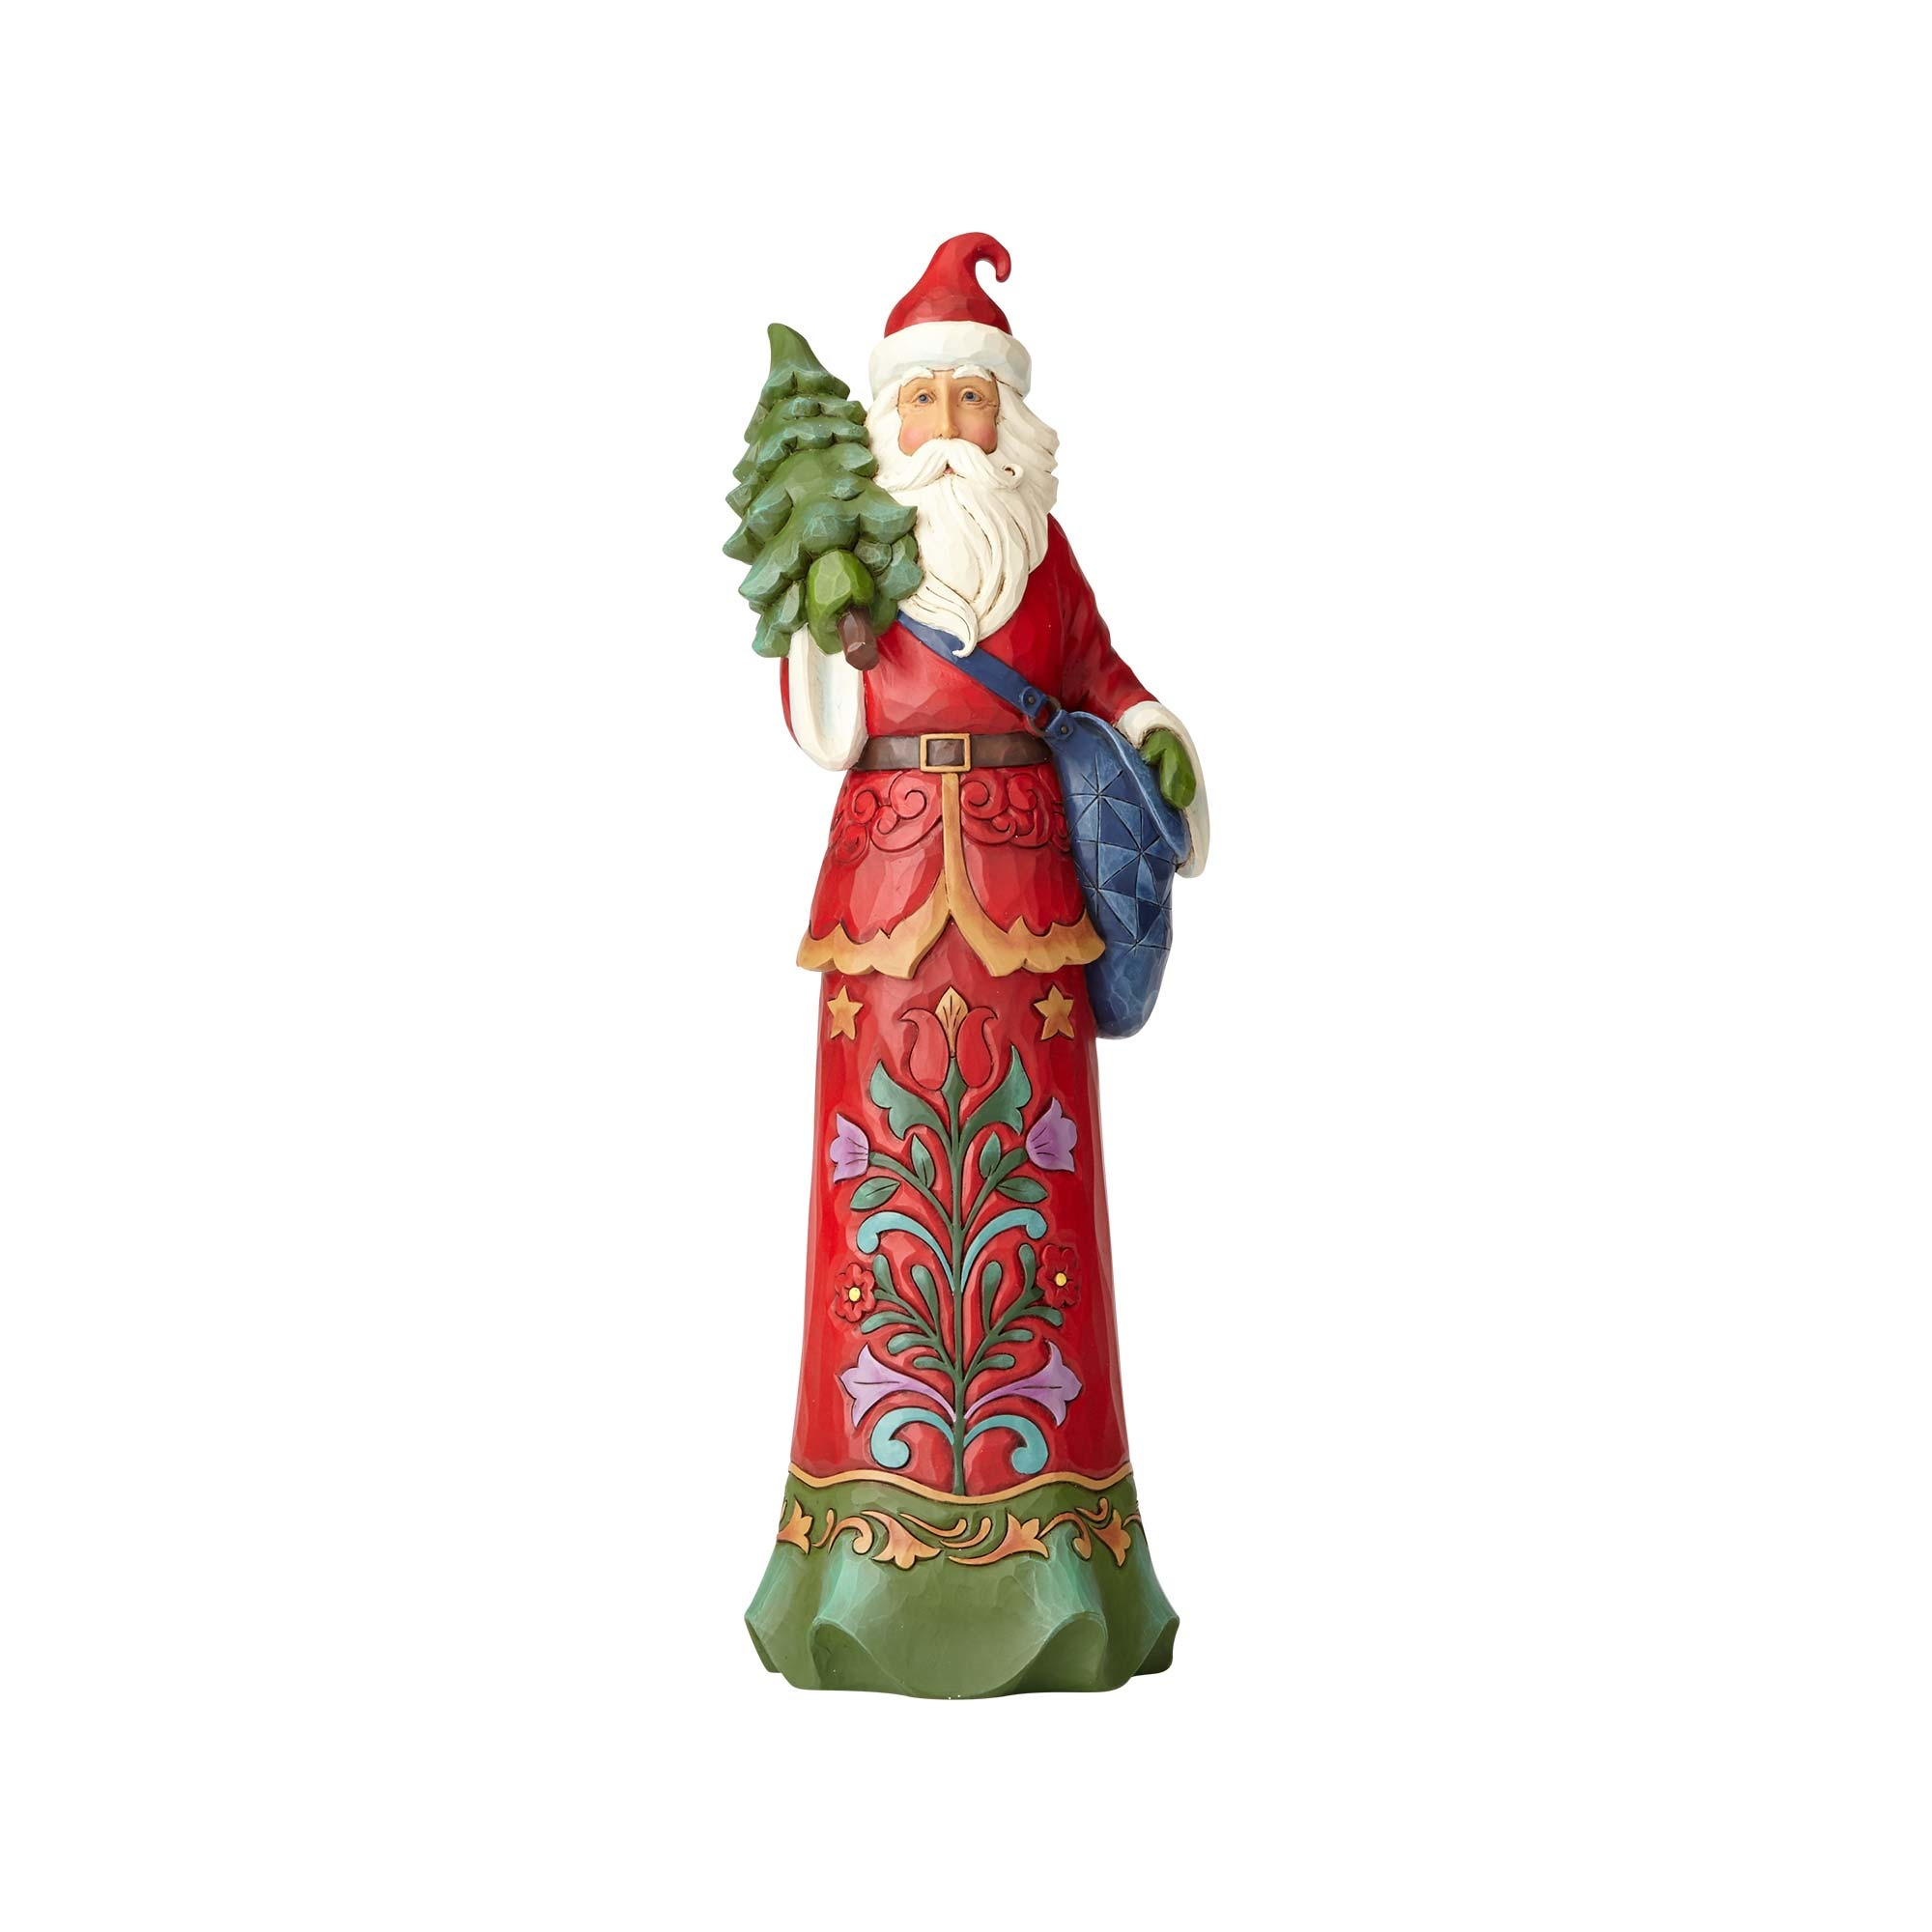 Enesco H7 Heartwood Creek Jim Shore Tall Santa W Tree